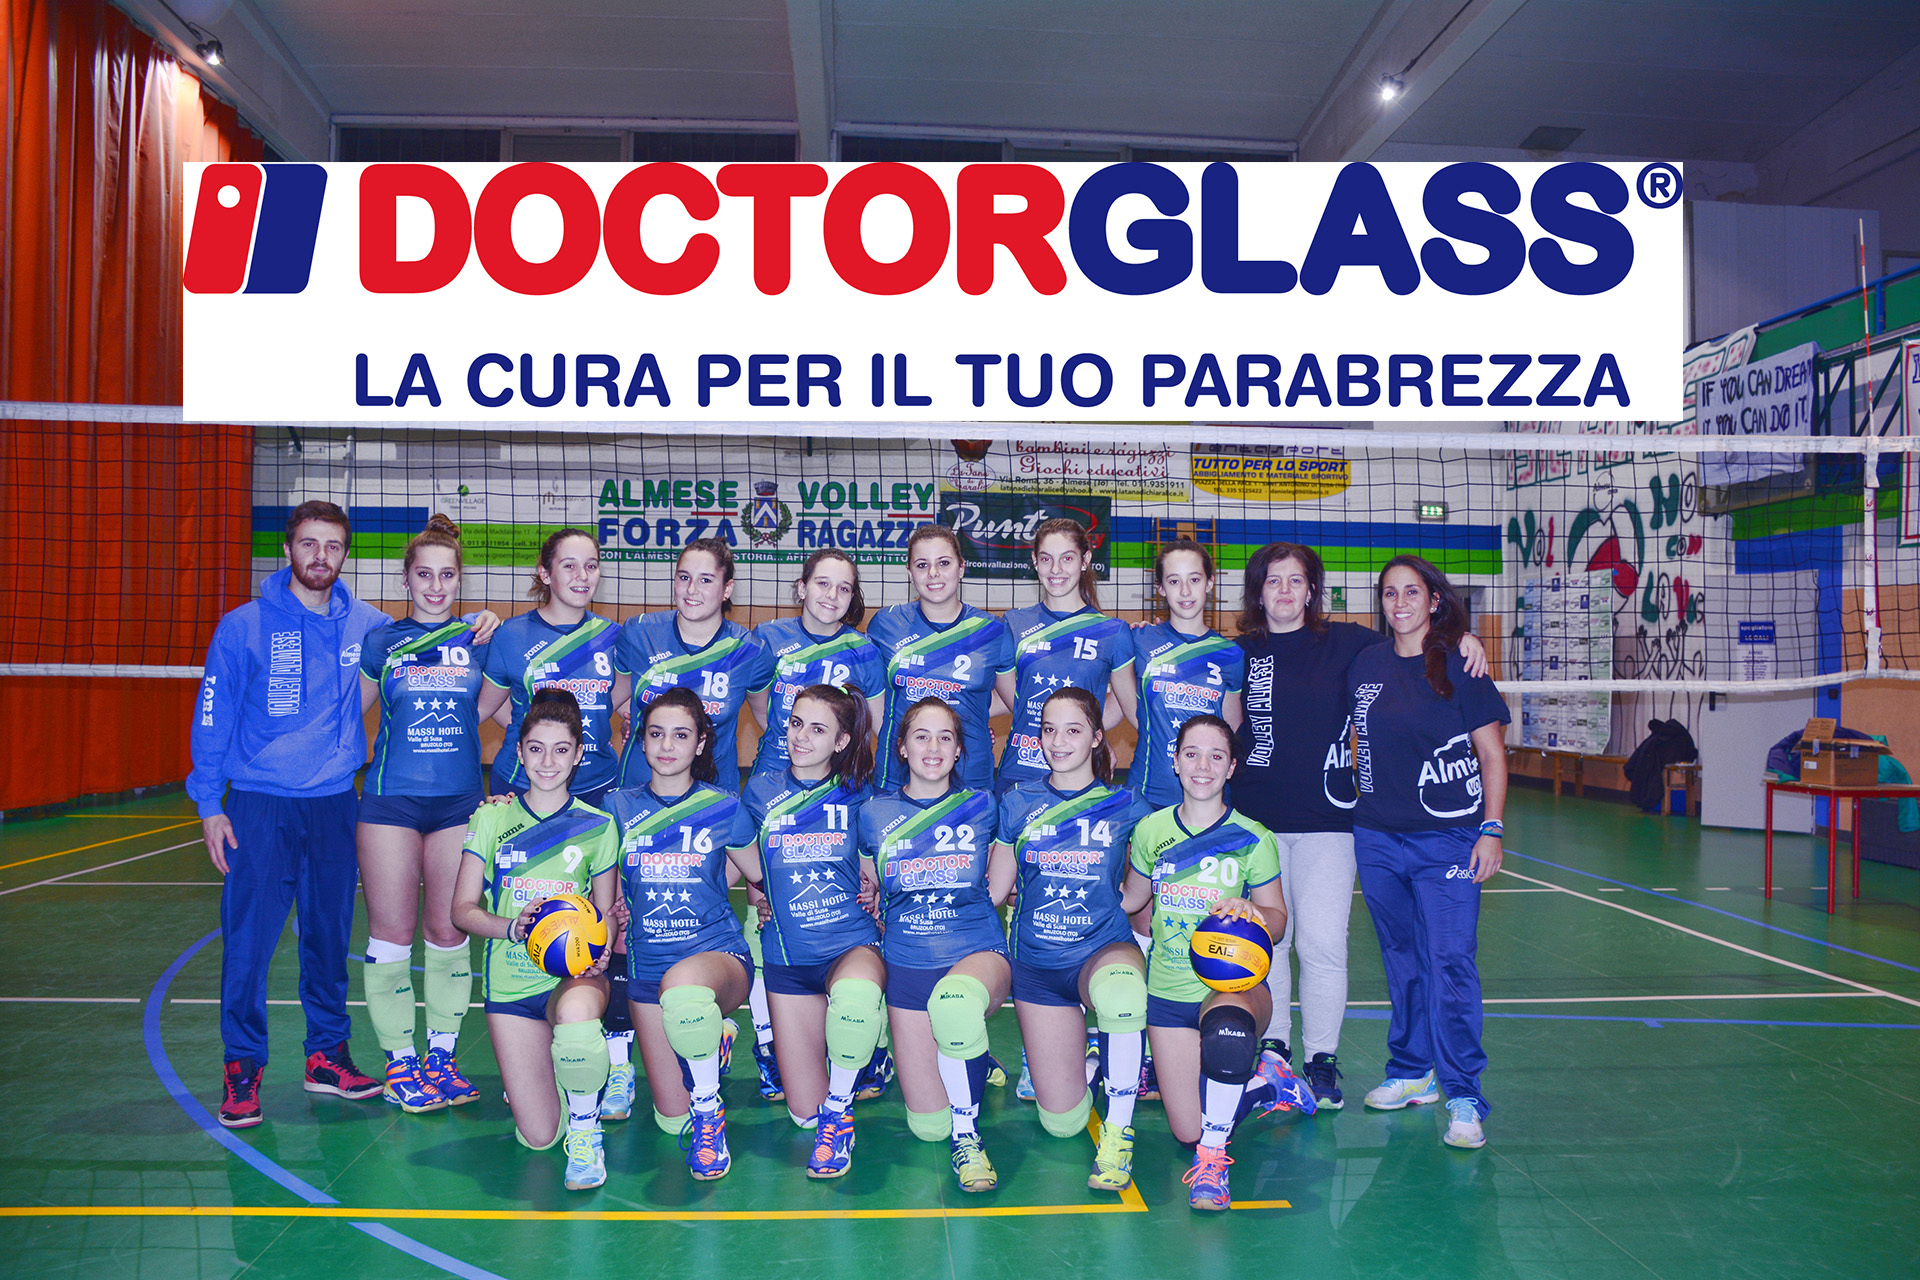 2° D. Doctor Glass